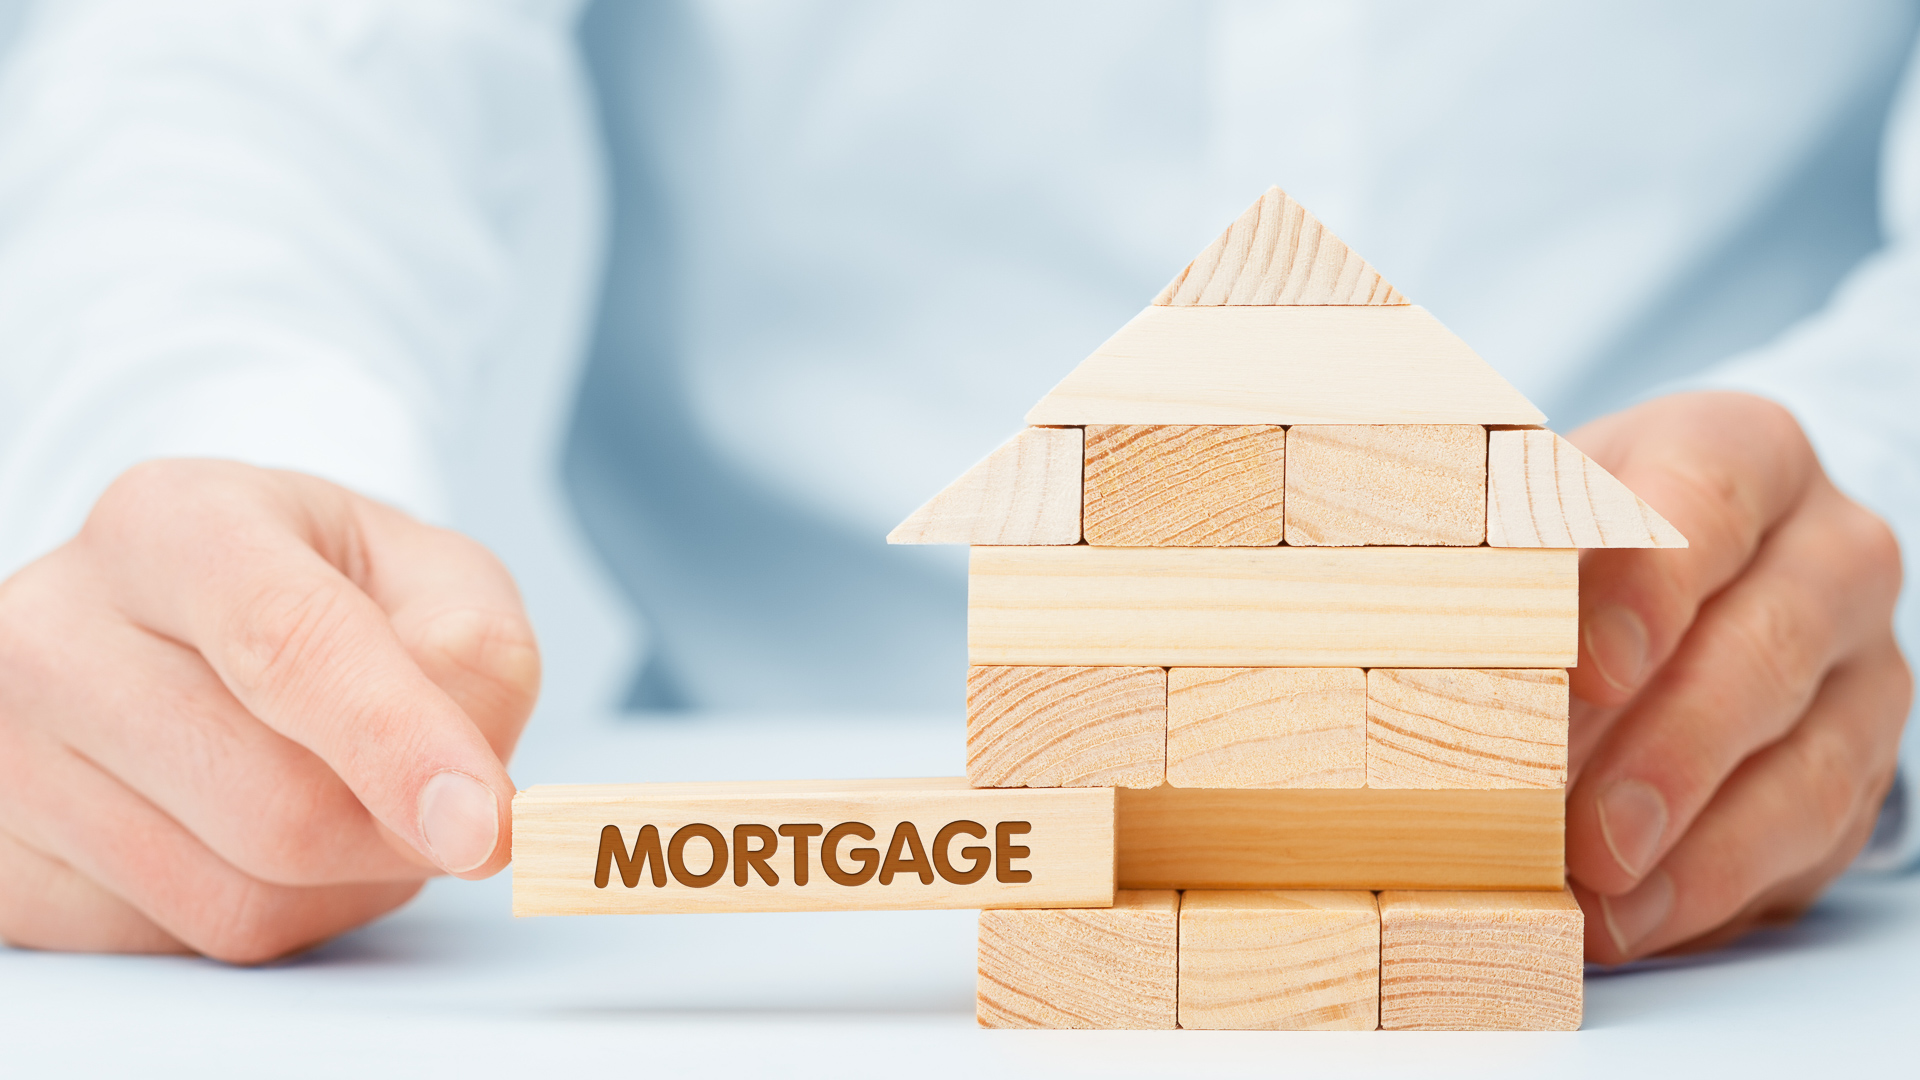 Pro tip (for nerds): Stress testing your mortgage budget